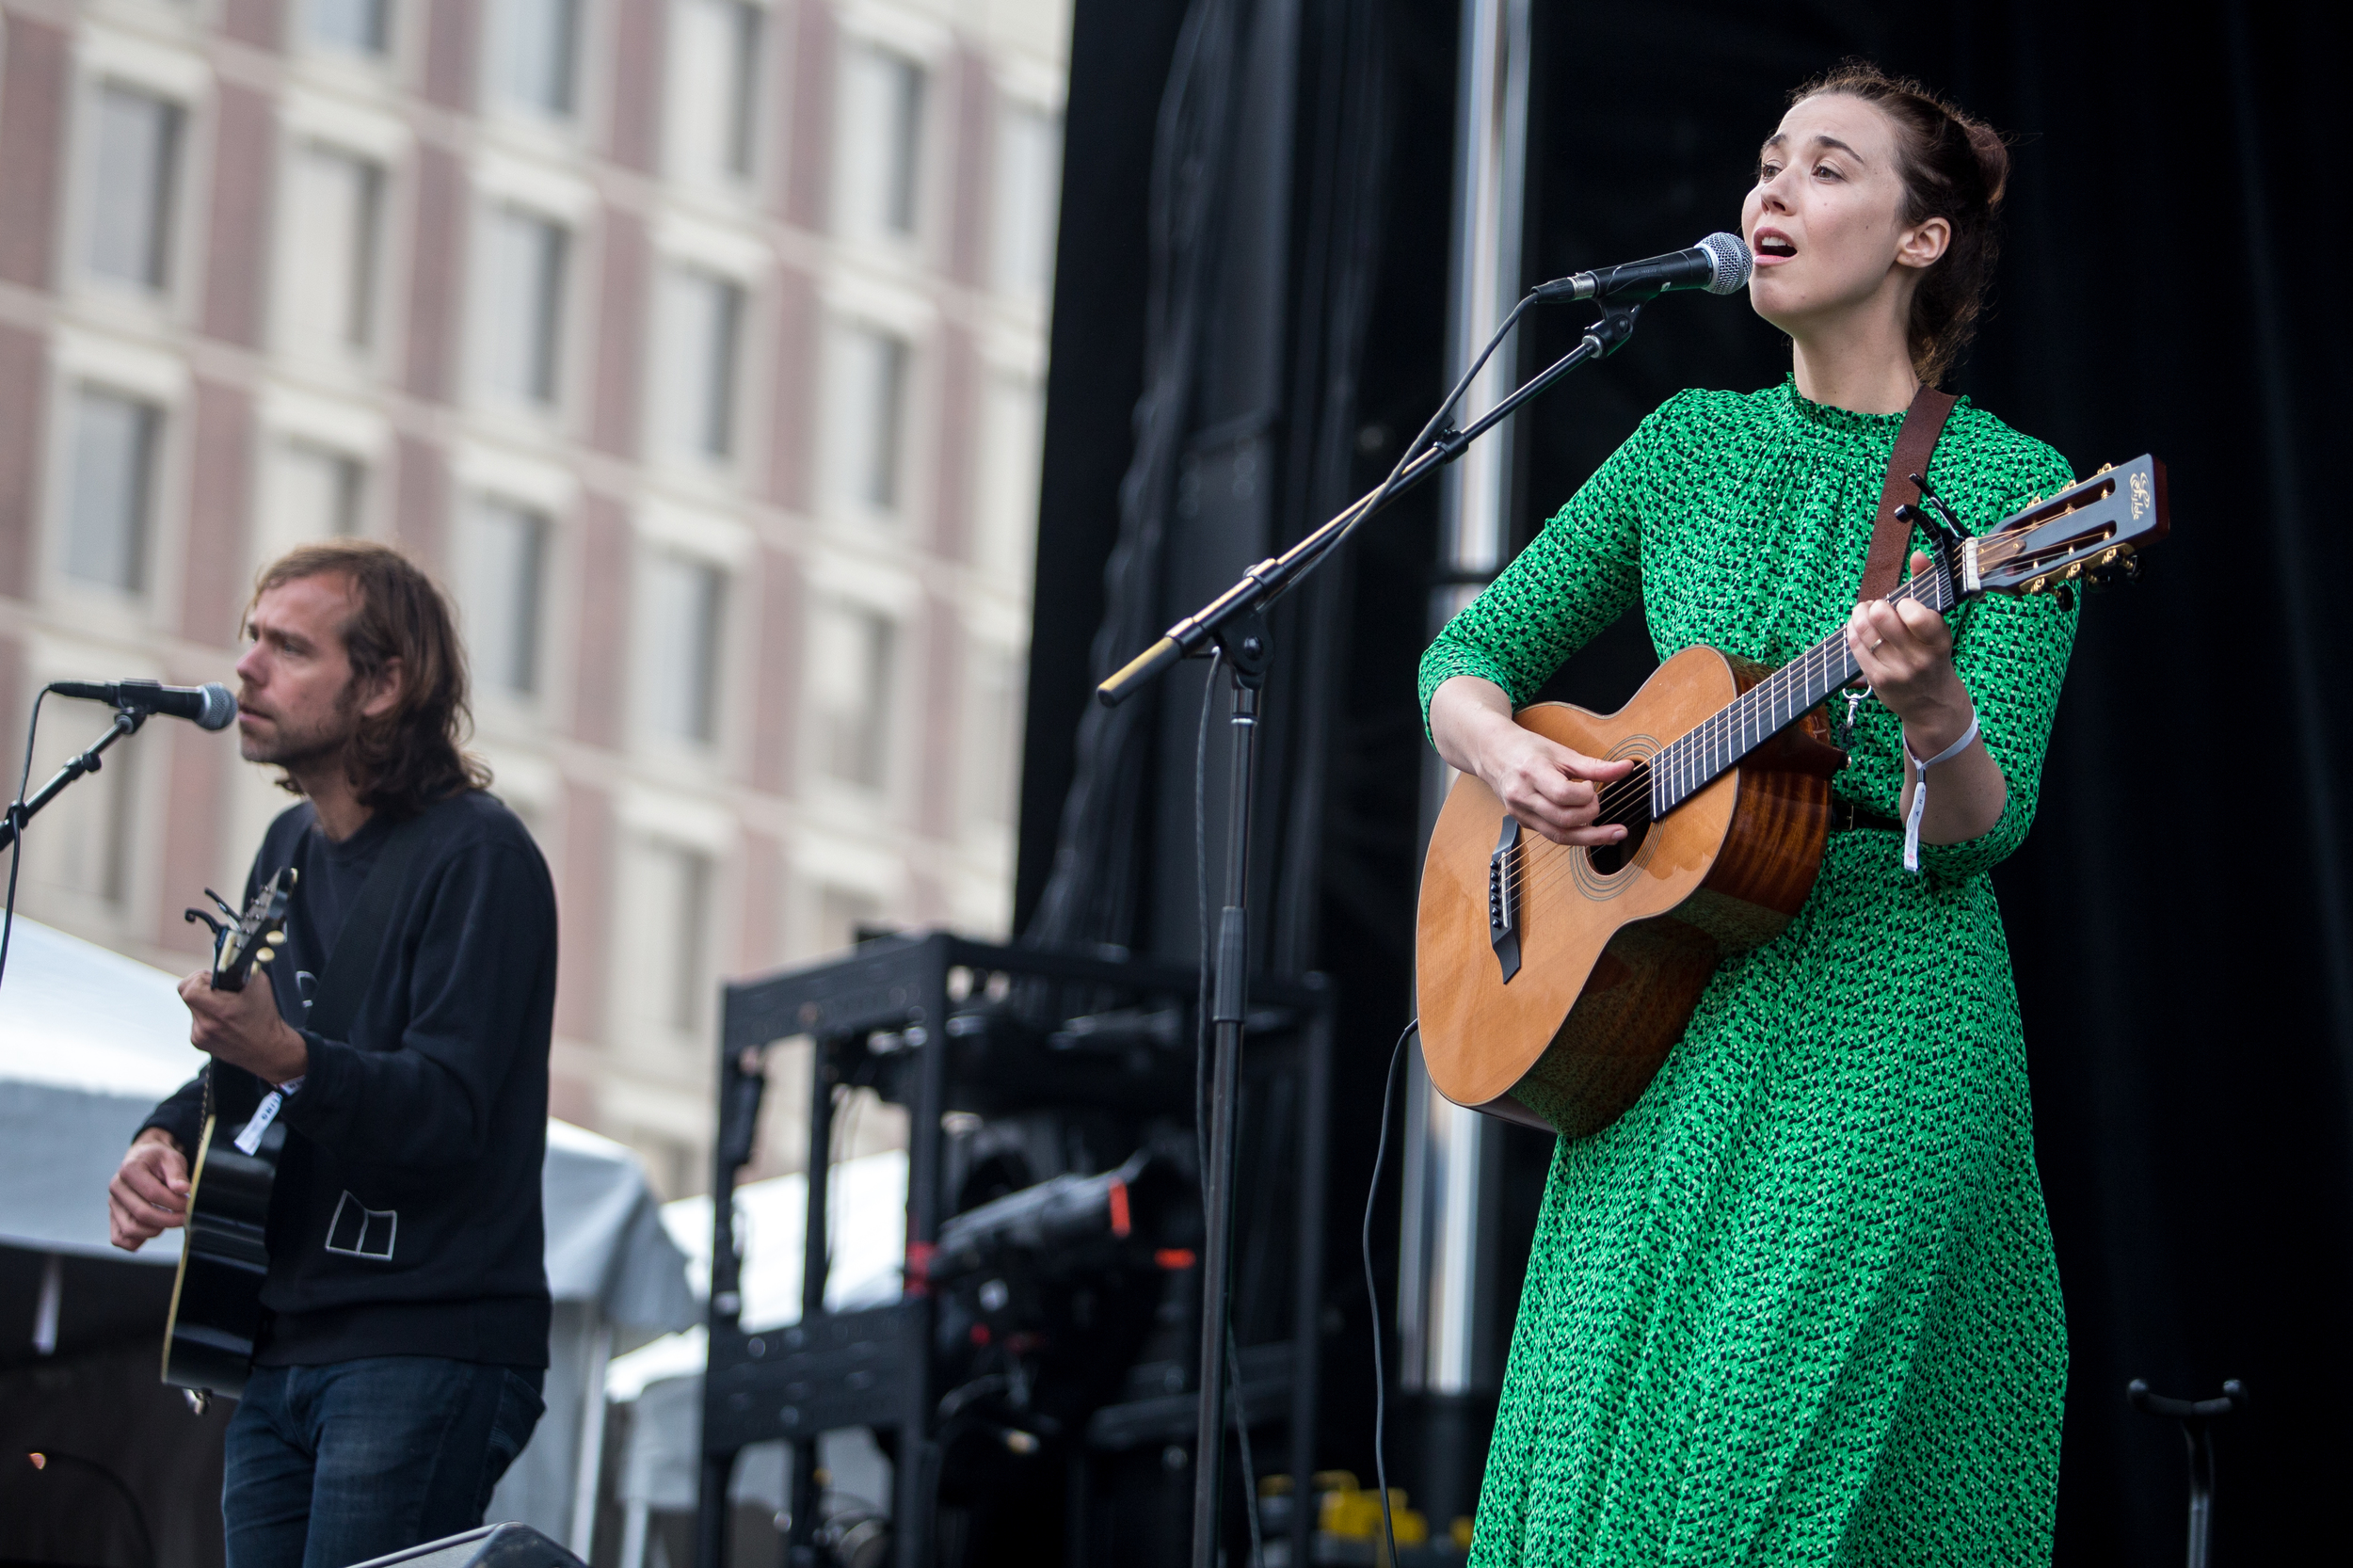 Lisa Hannigan performs with Aaron Dessner of The National to open the festival on Friday.